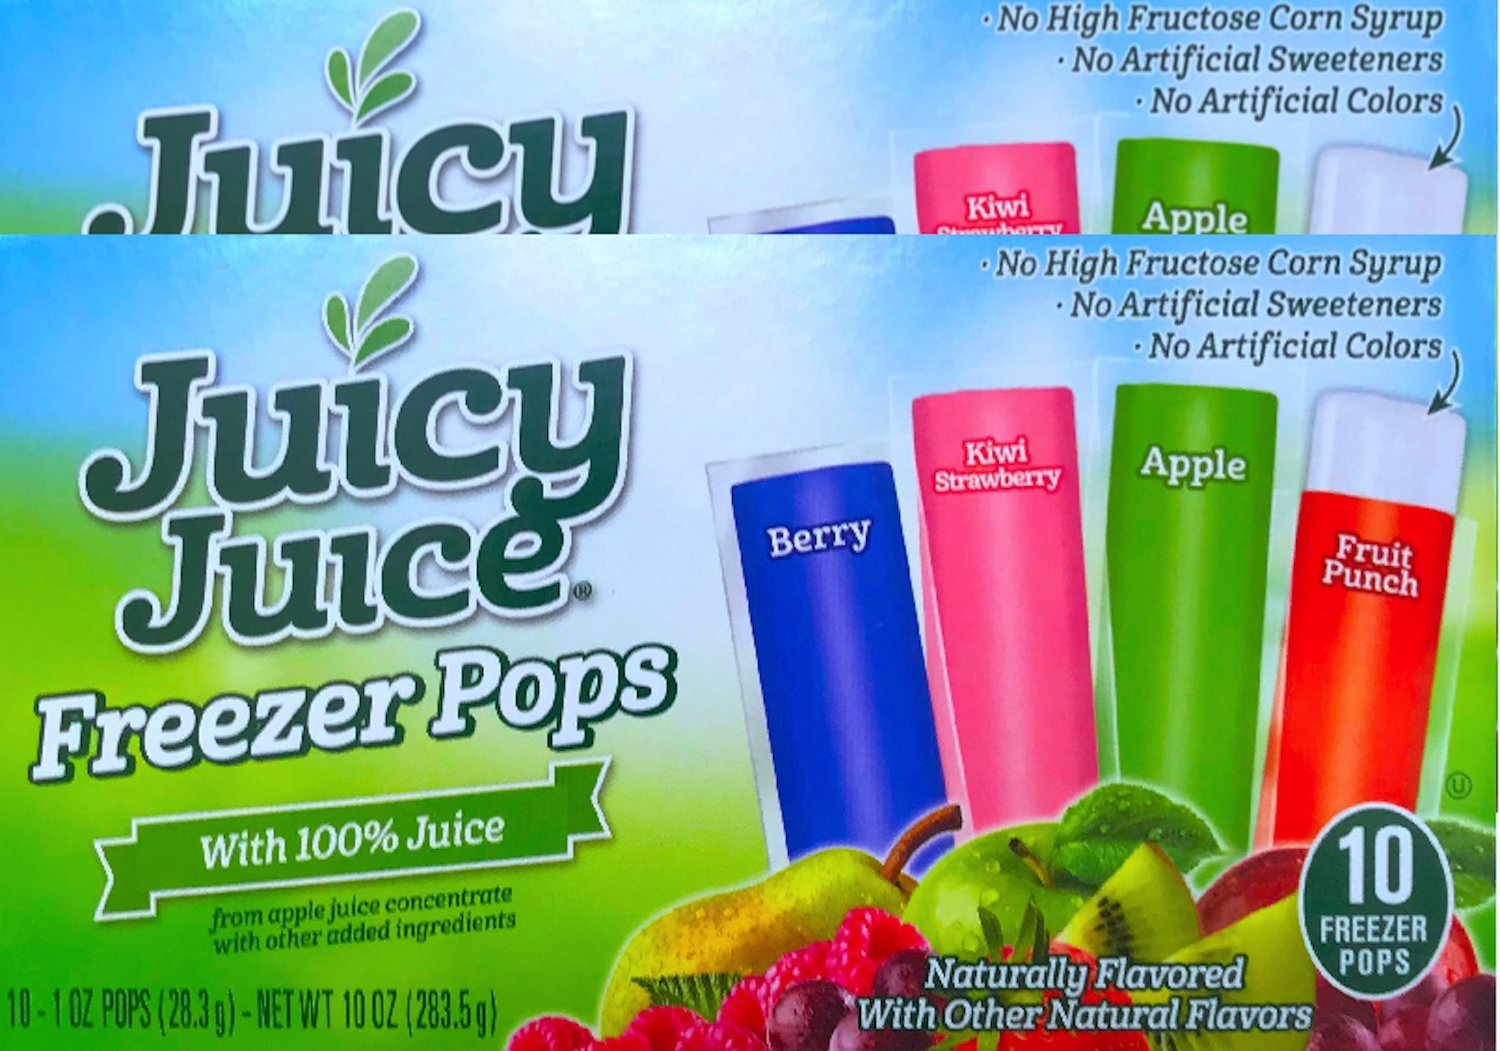 New Juicy Juice Freezer Pops With 100% Juice NO High Fructose Corn Syrup, No Artificial Sweeteners or Colors Net Wt 10 Oz (2)